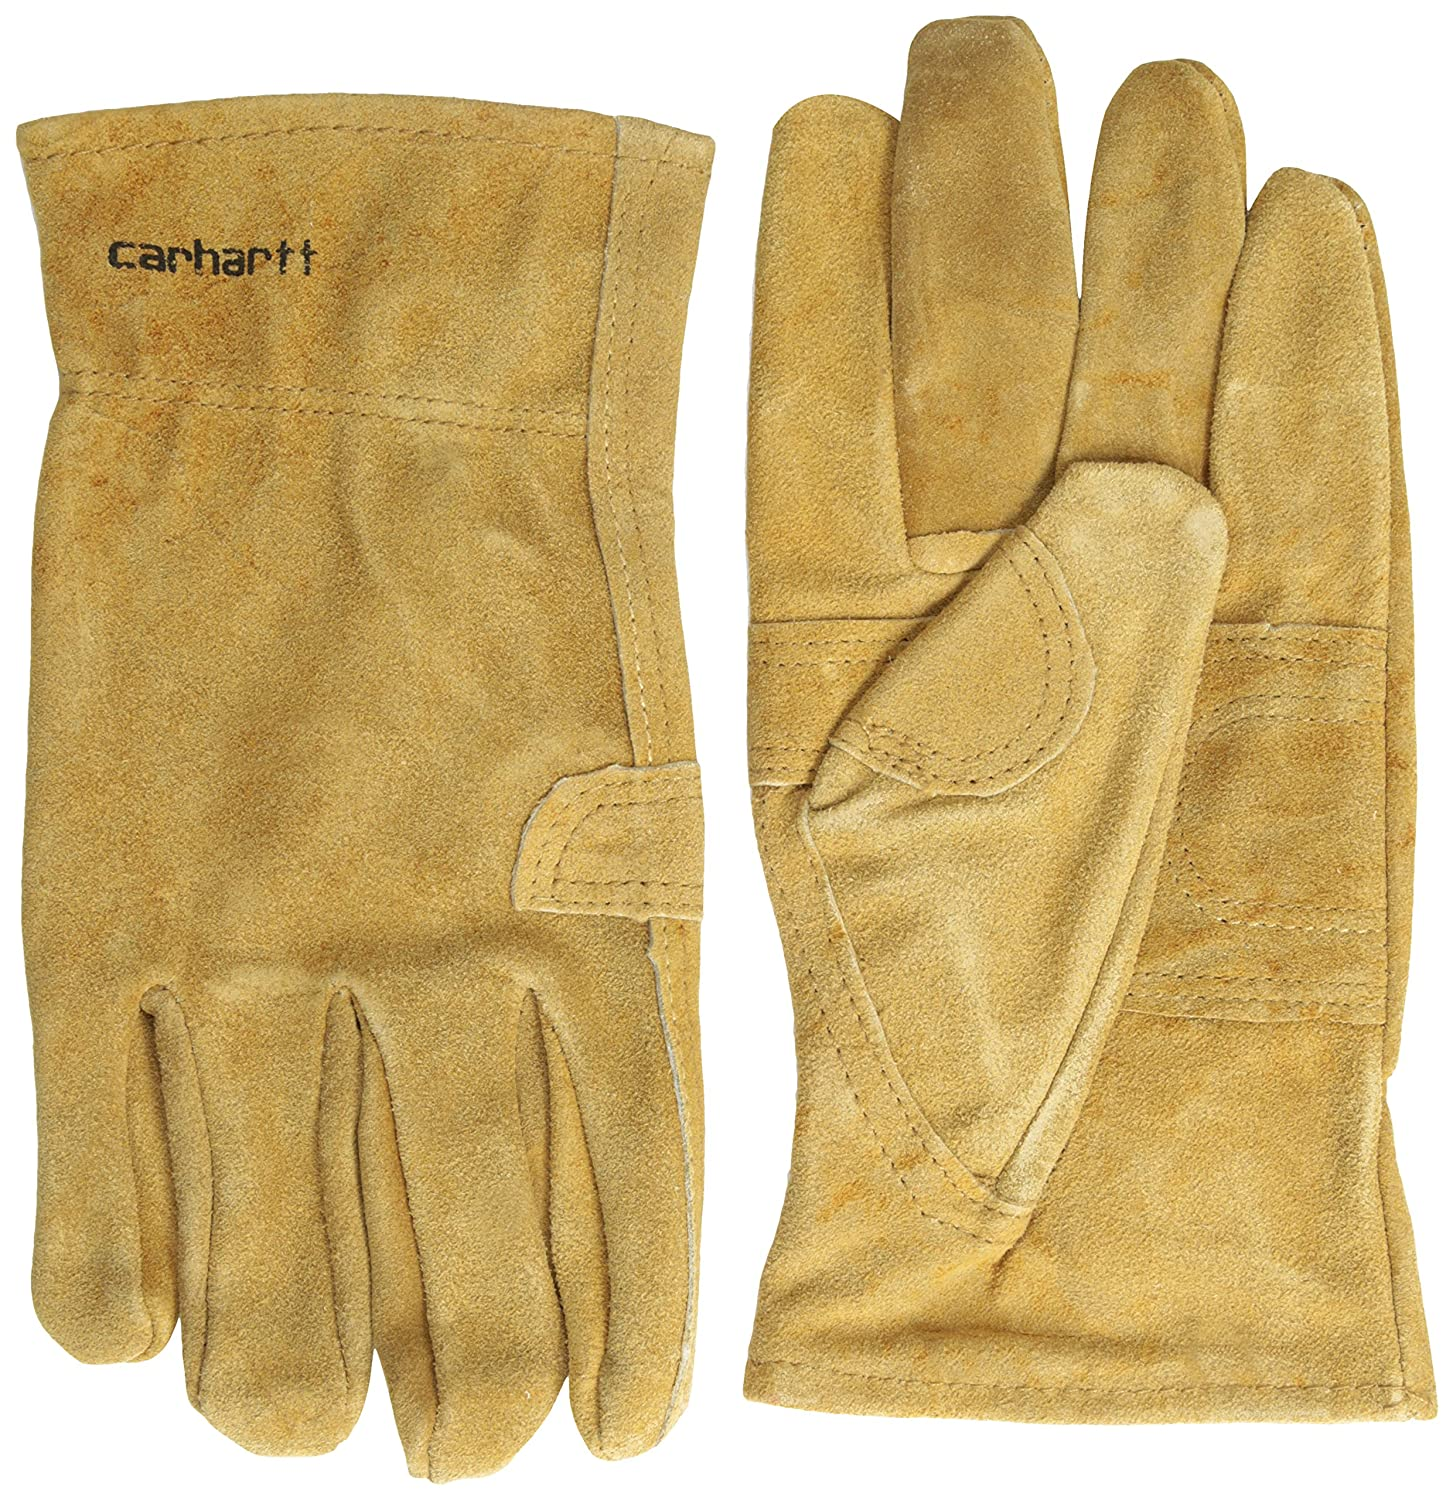 Mens leather gloves black friday - Carhartt Men S Leather Fencer Work Glove